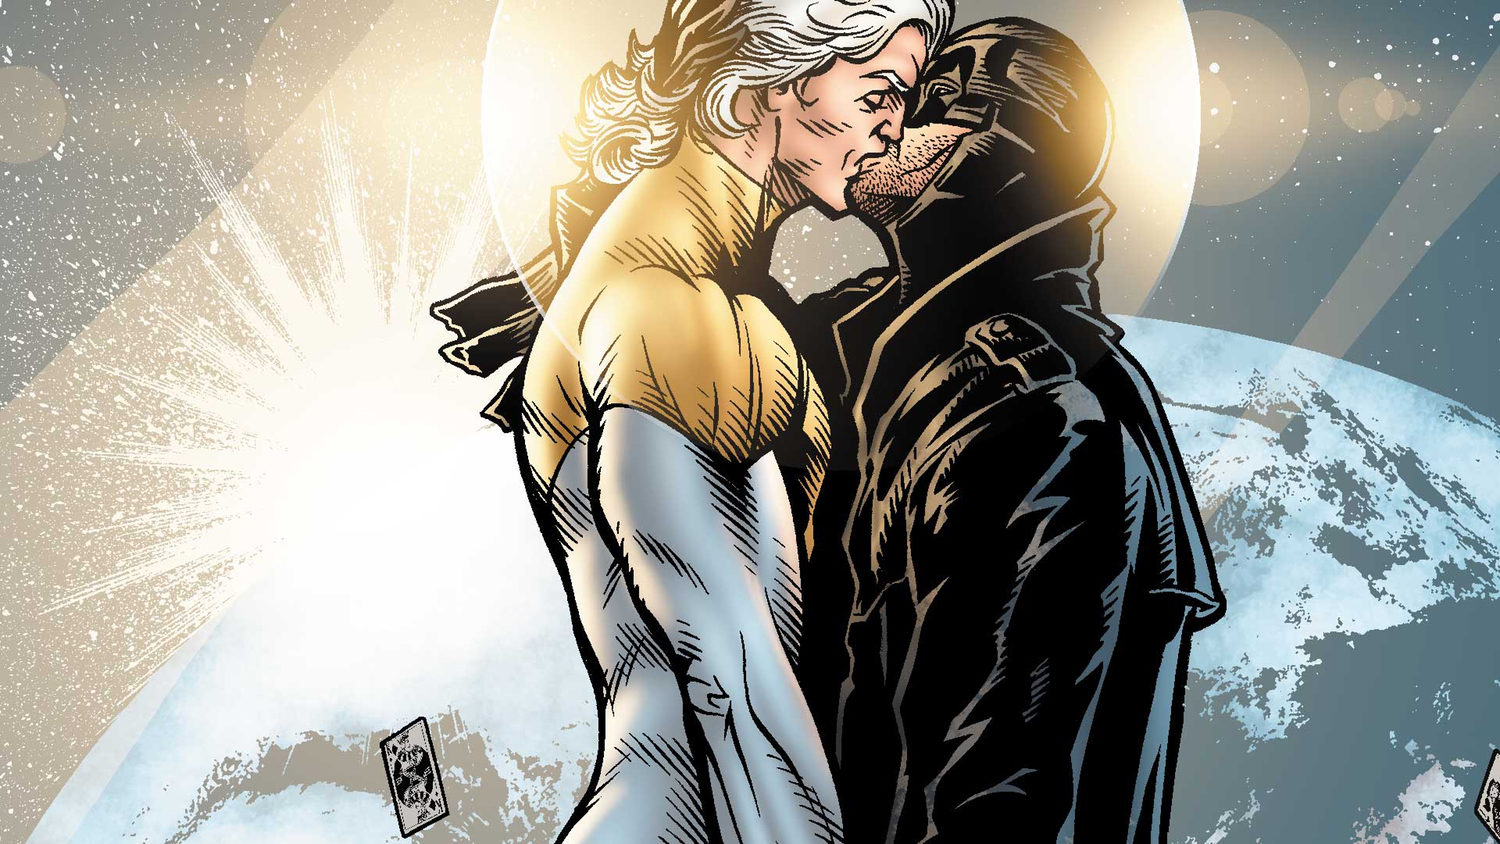 G de gay. Midnighter (y Apollo)